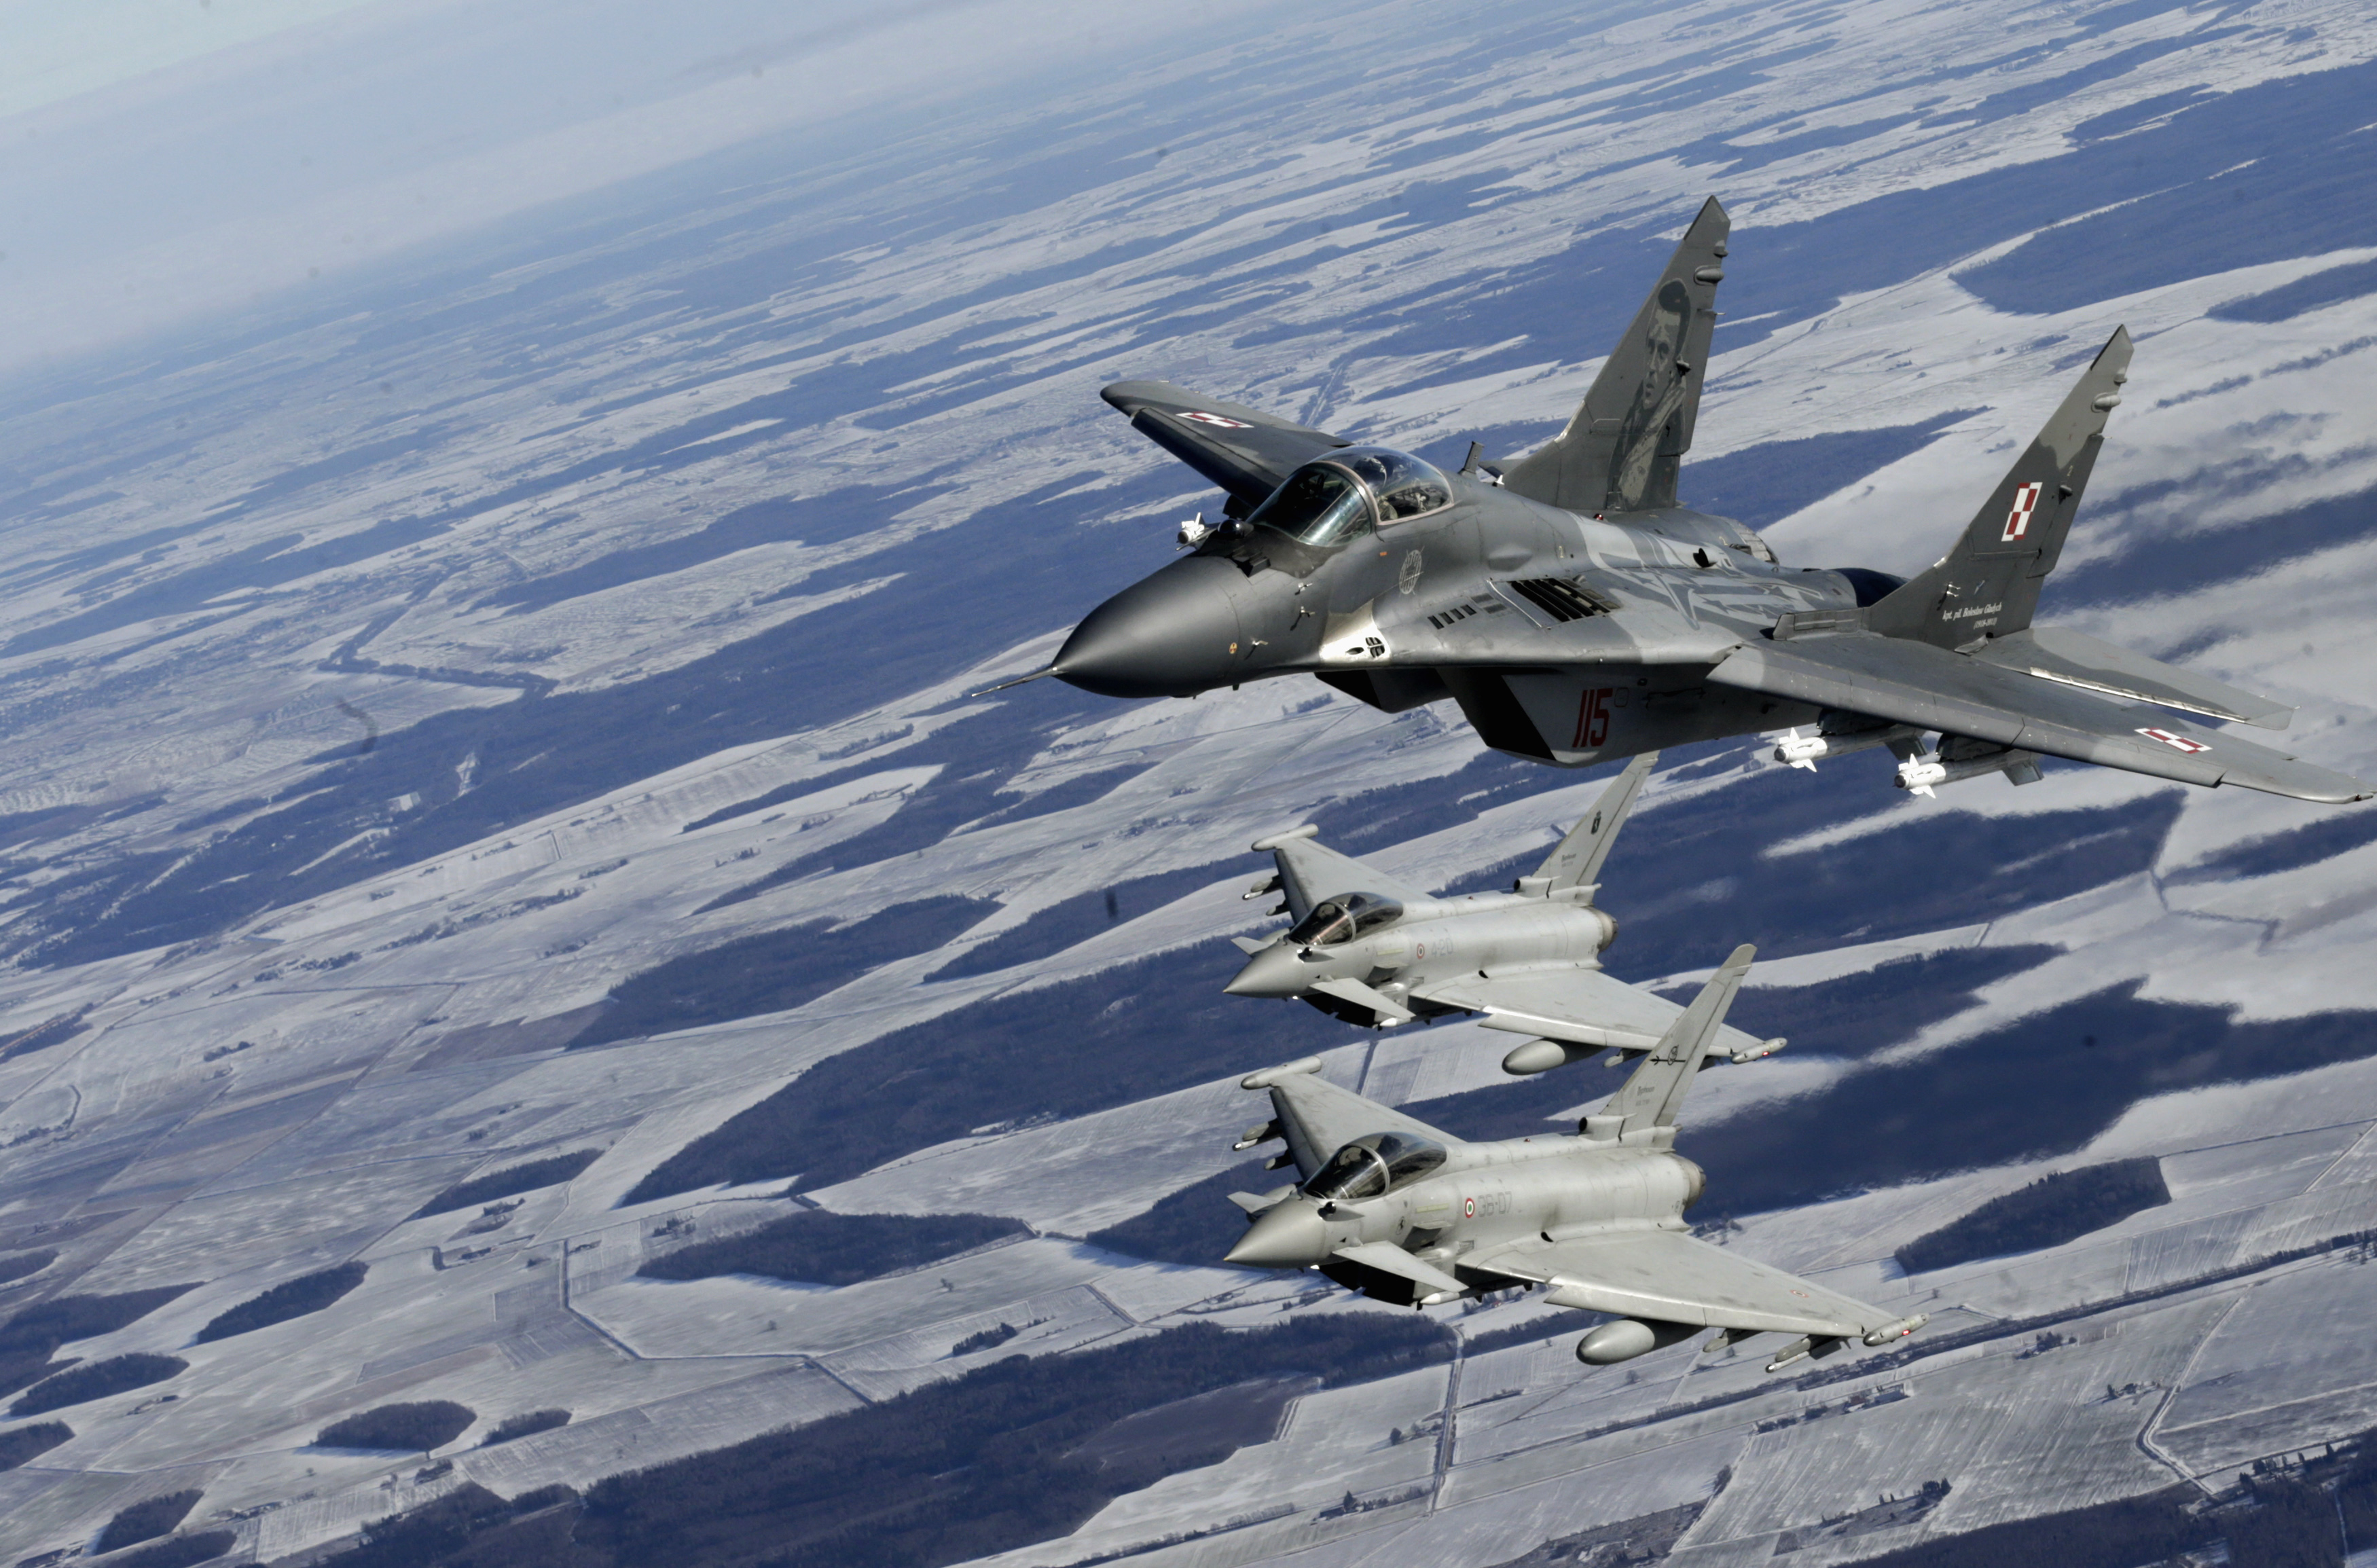 A Polish Air Force MIG-29 fighter and Italian Air Force Eurofighter Typhoon fighters participate during a NATO air policing mission patrol over the Baltics on February 10, 2015.